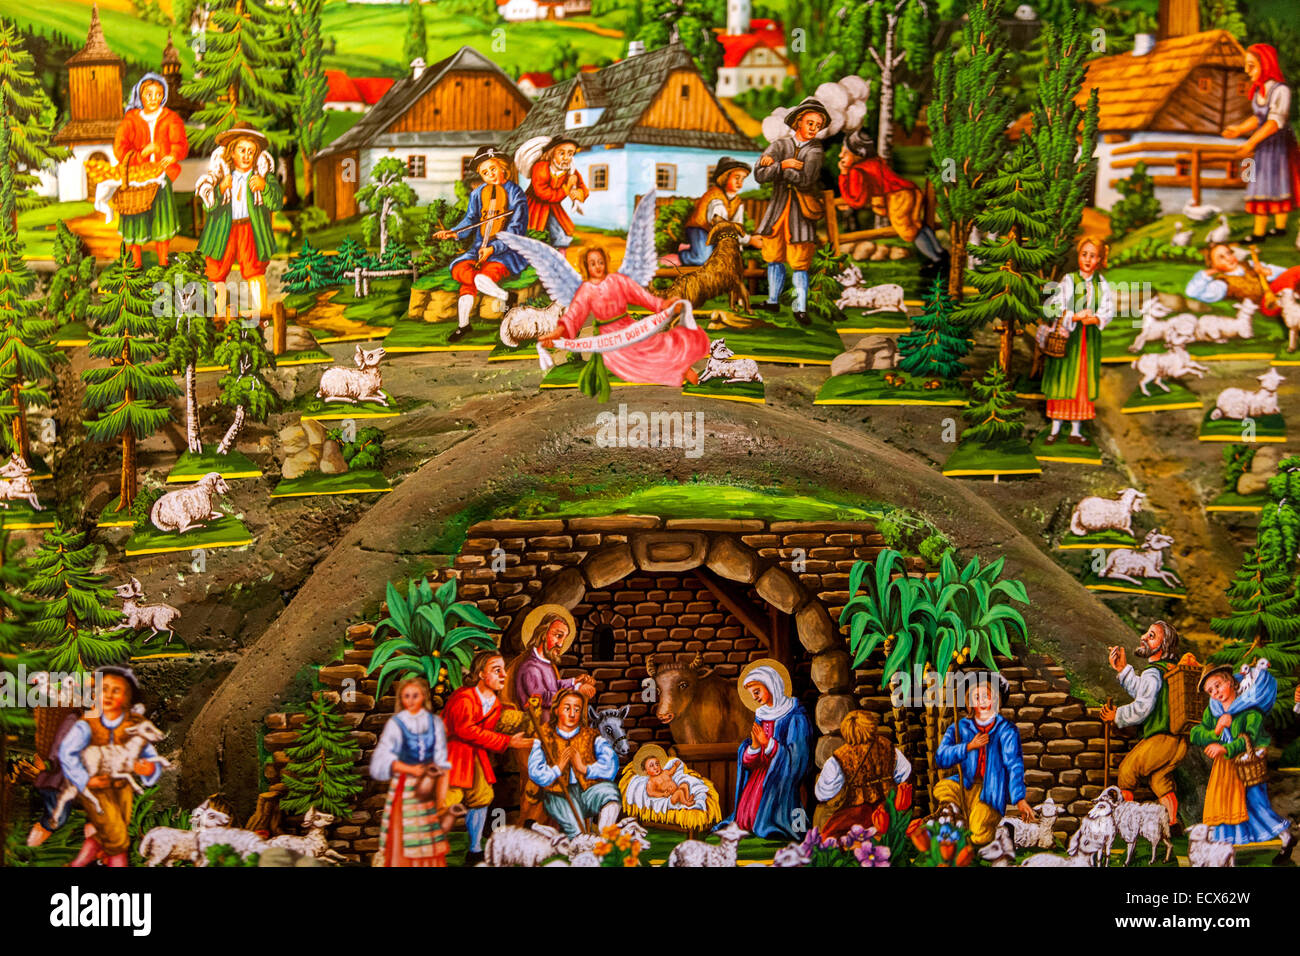 Traditional Czech Christmas Nativity scene. Scenes from the birth of Jesus. Stock Photo